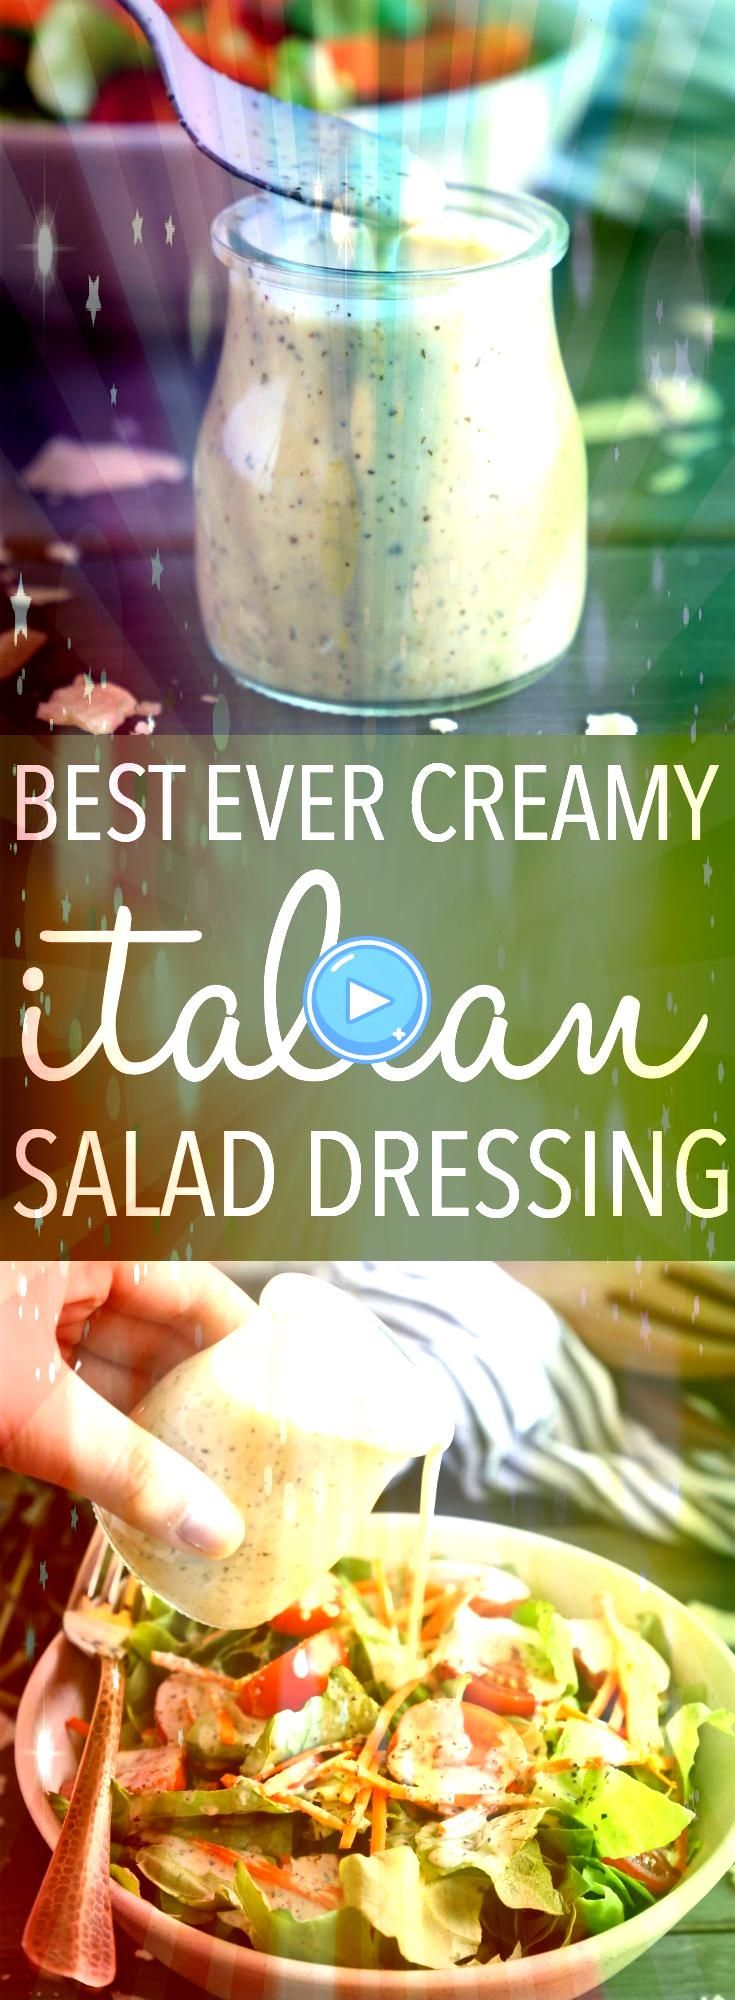 omit cheese  This Classic Creamy Itali ADJUST omit cheese  This Classic Creamy Itali Homemade Caesar Salad Dressing is better than the bottle So creamy with fresh garlic...